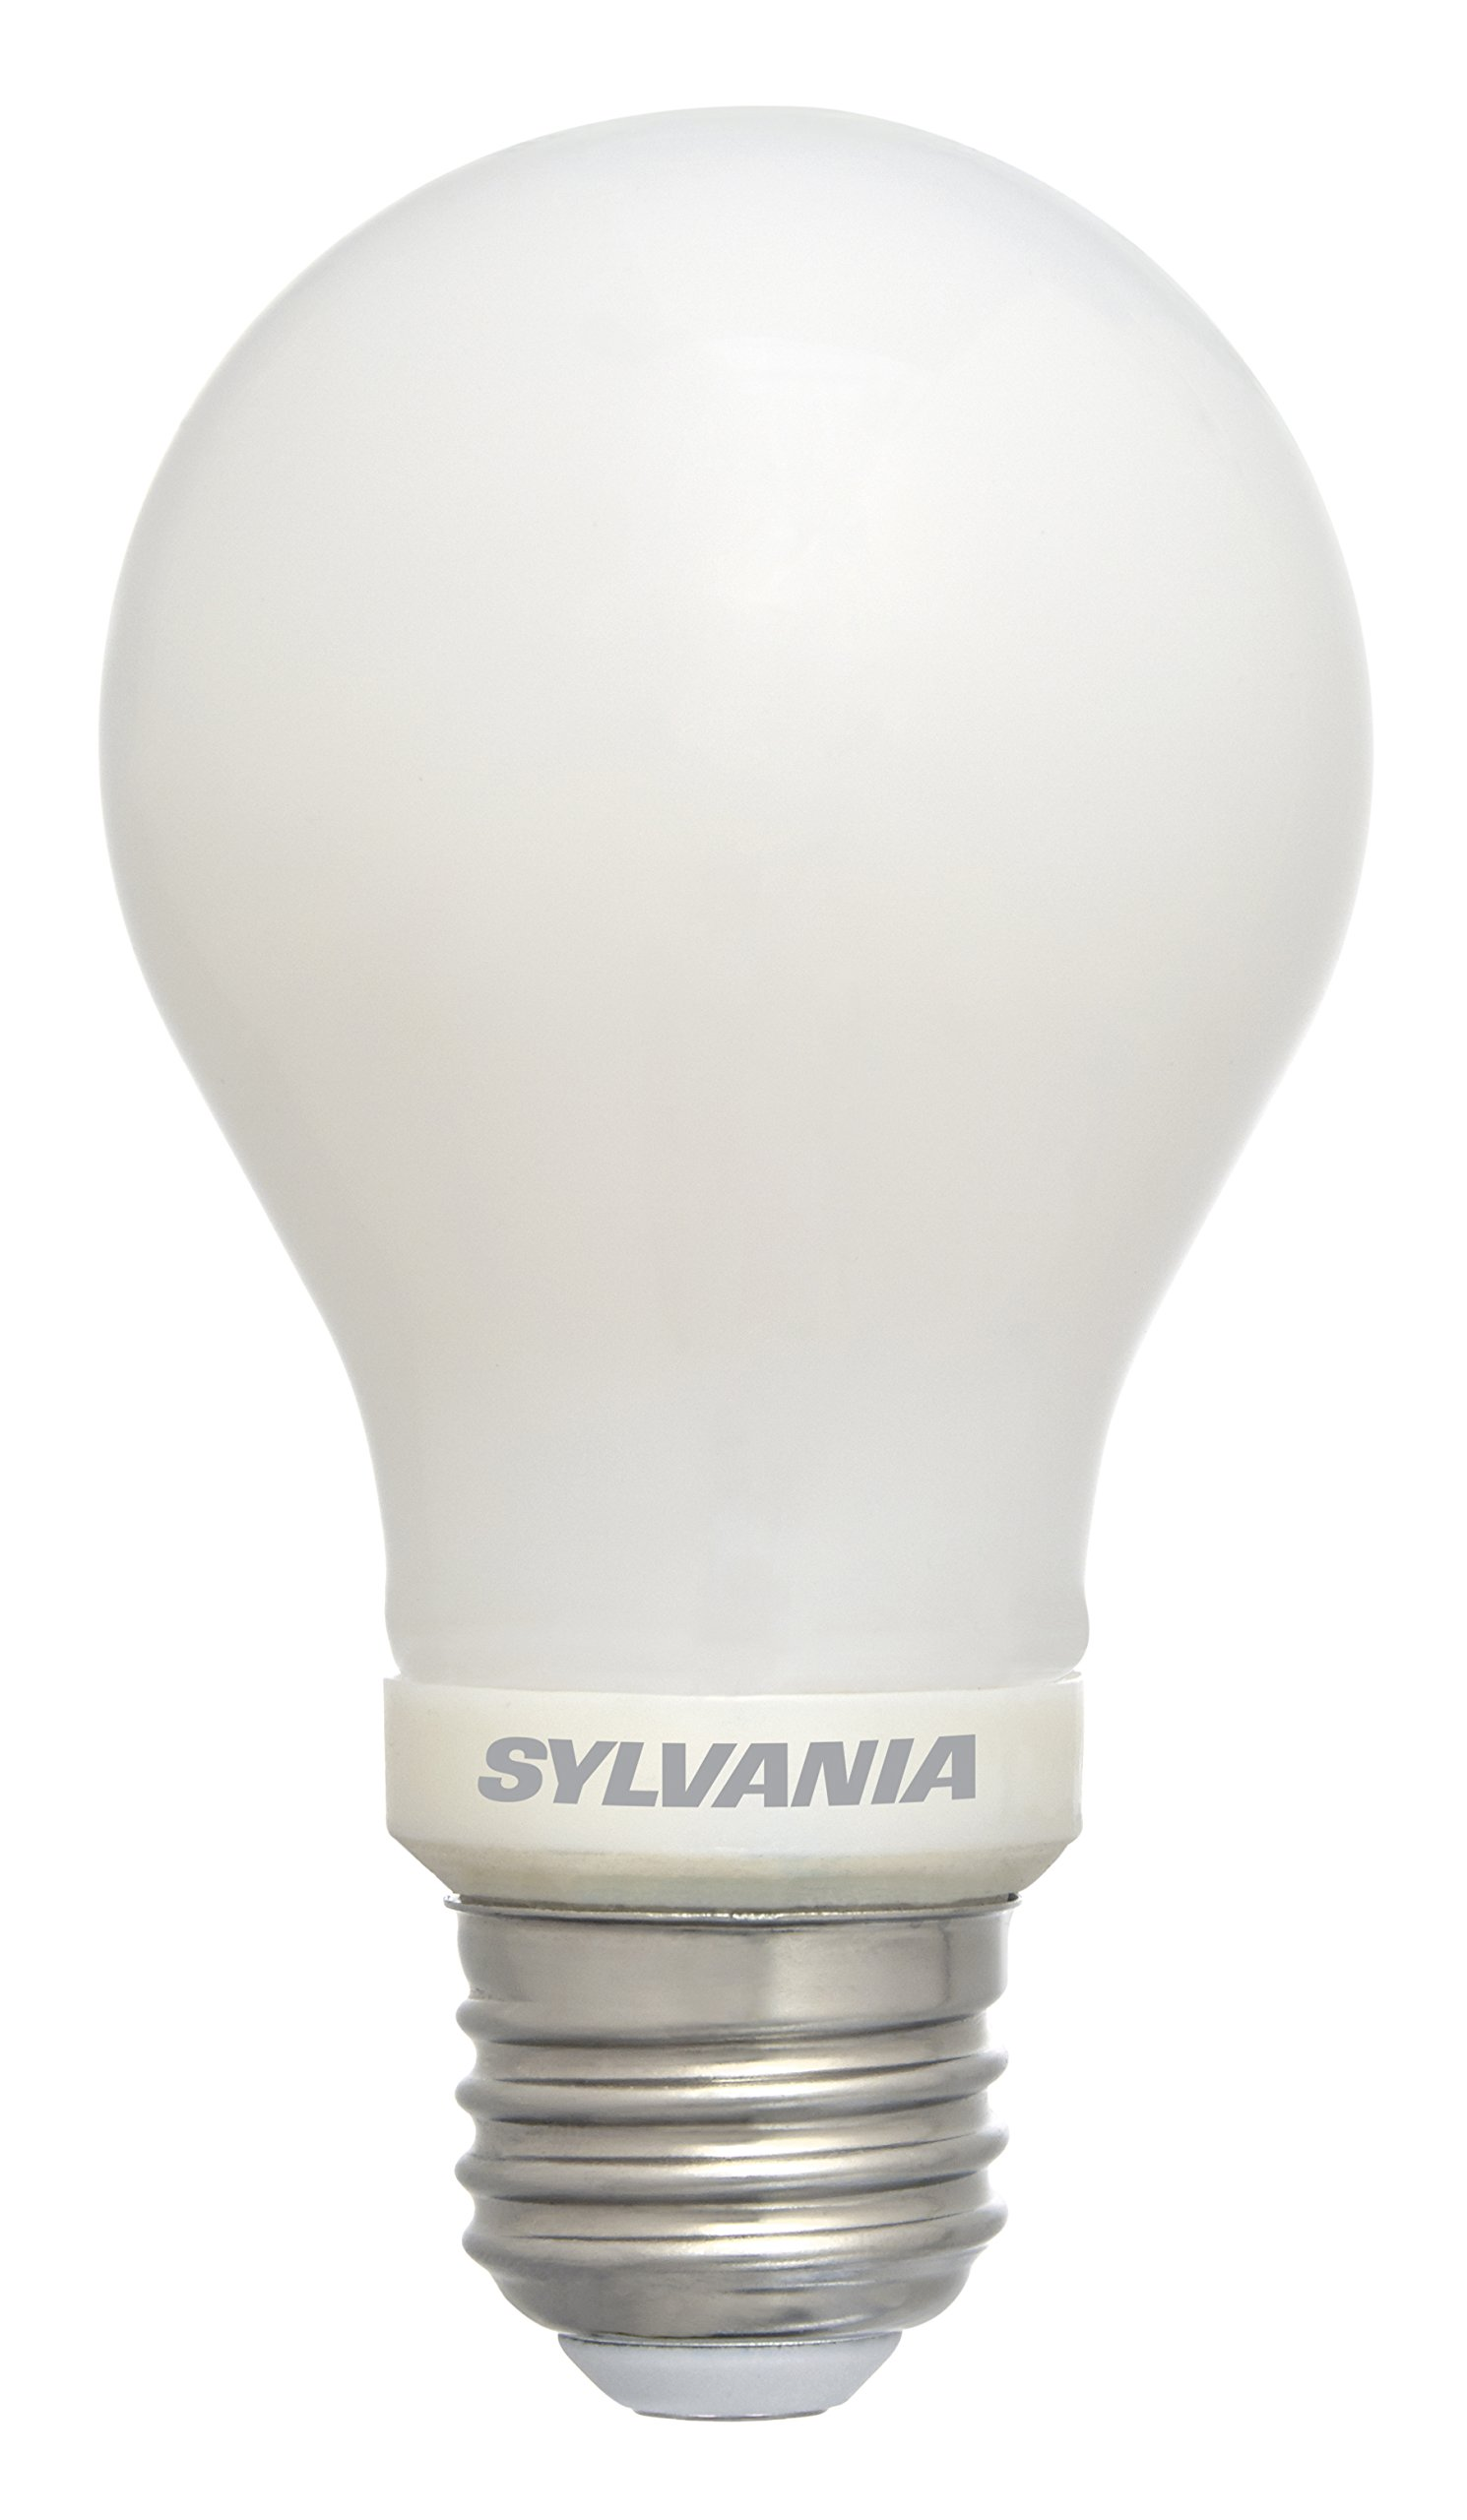 Sylvania 60 Watt Equivalent, A19 LED Light Bulbs, Non-Dimmable, Daylight Color 5000K, Made in The USA with US and Global Parts, 4 Pack